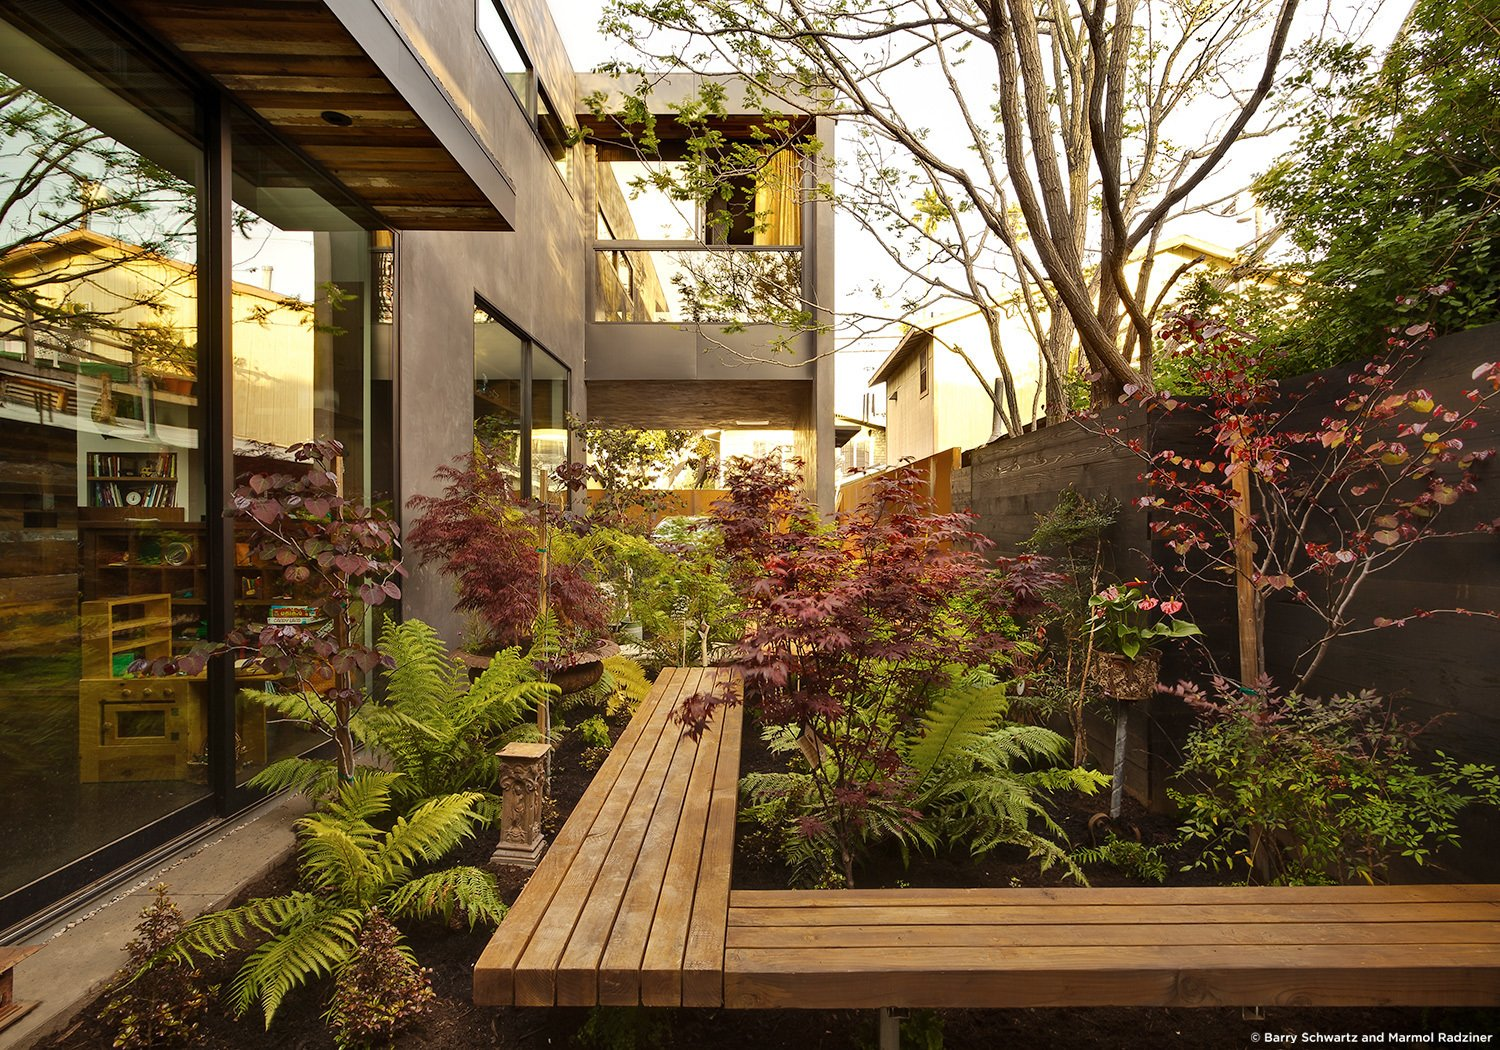 #SelaResidence #modern #midcentury #privacy #openness #two-story #lighting #exterior #outside #outdoor #landscape #green #windows #glass #seating #wood #panels #Venice #California #MarmolRadziner  Sela Residence